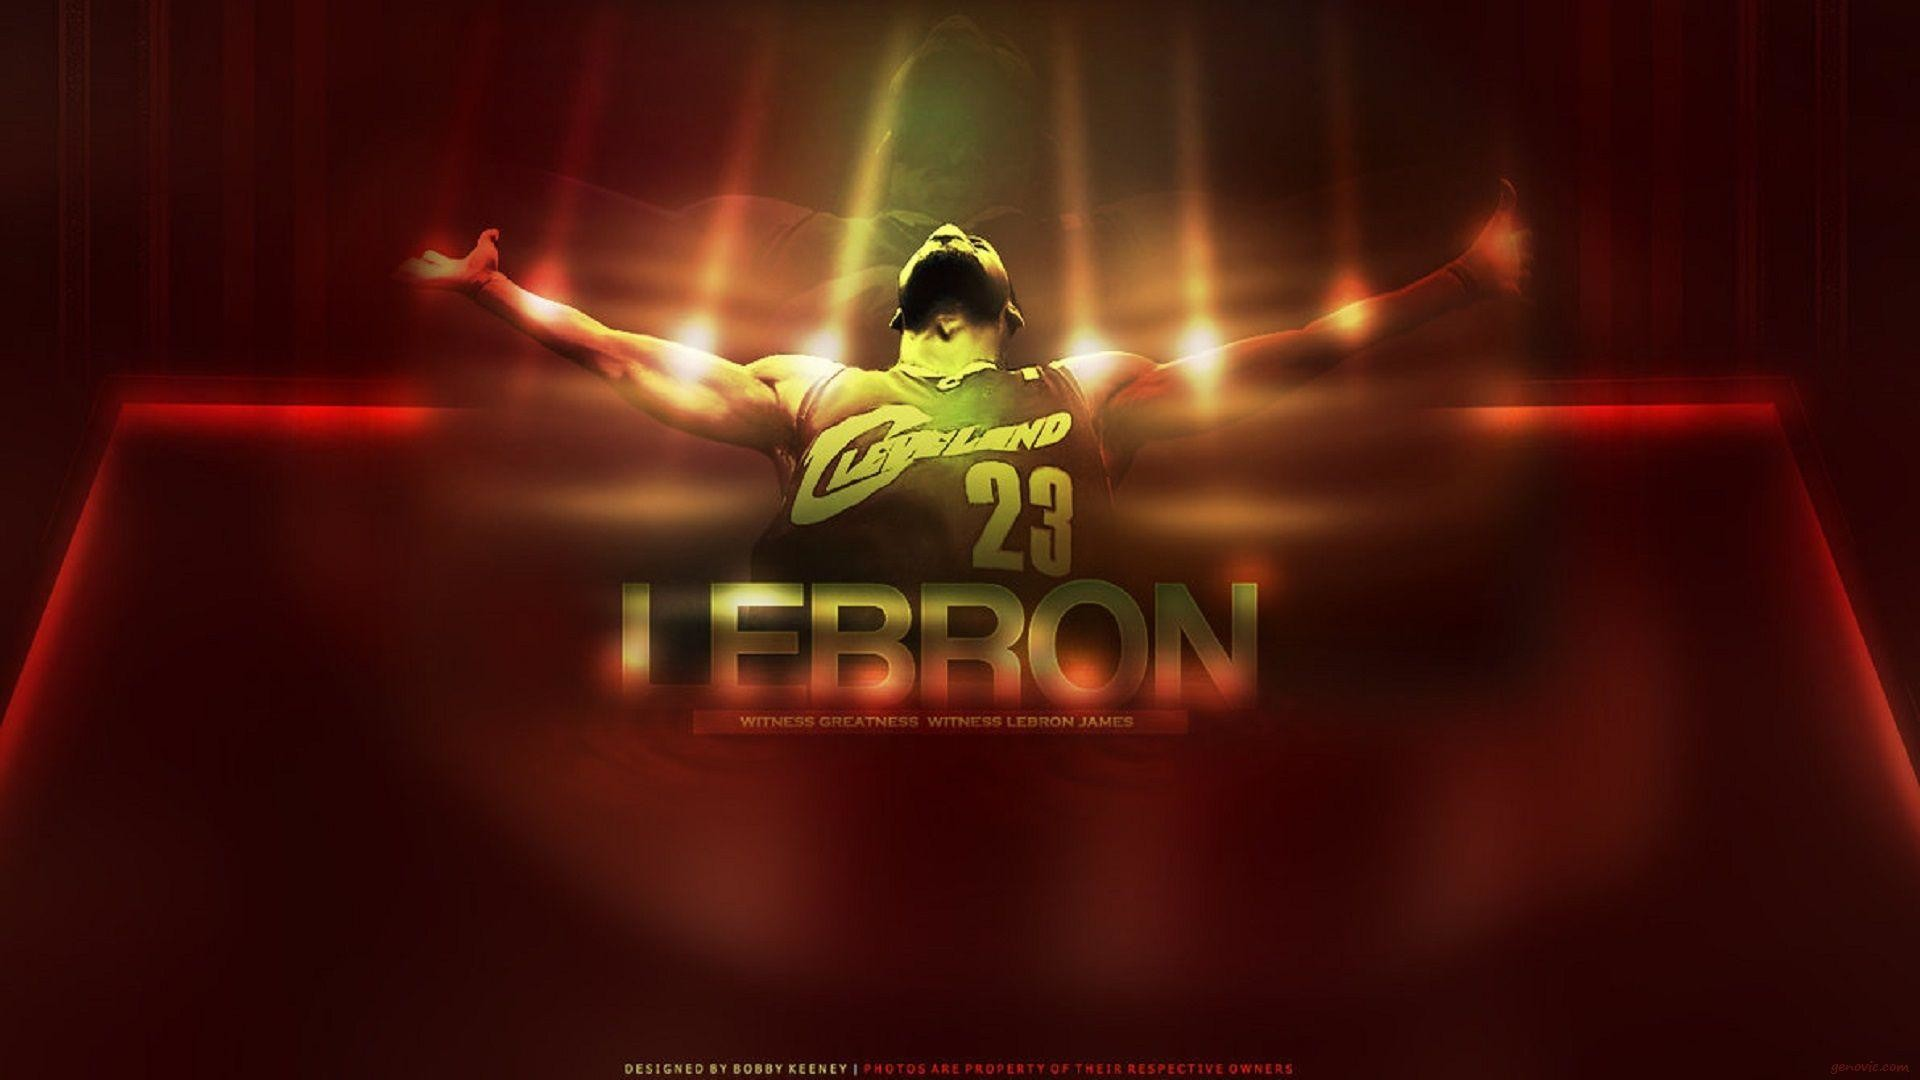 Lebron James Dunk Wallpapers, Download Free HD Wallpapers